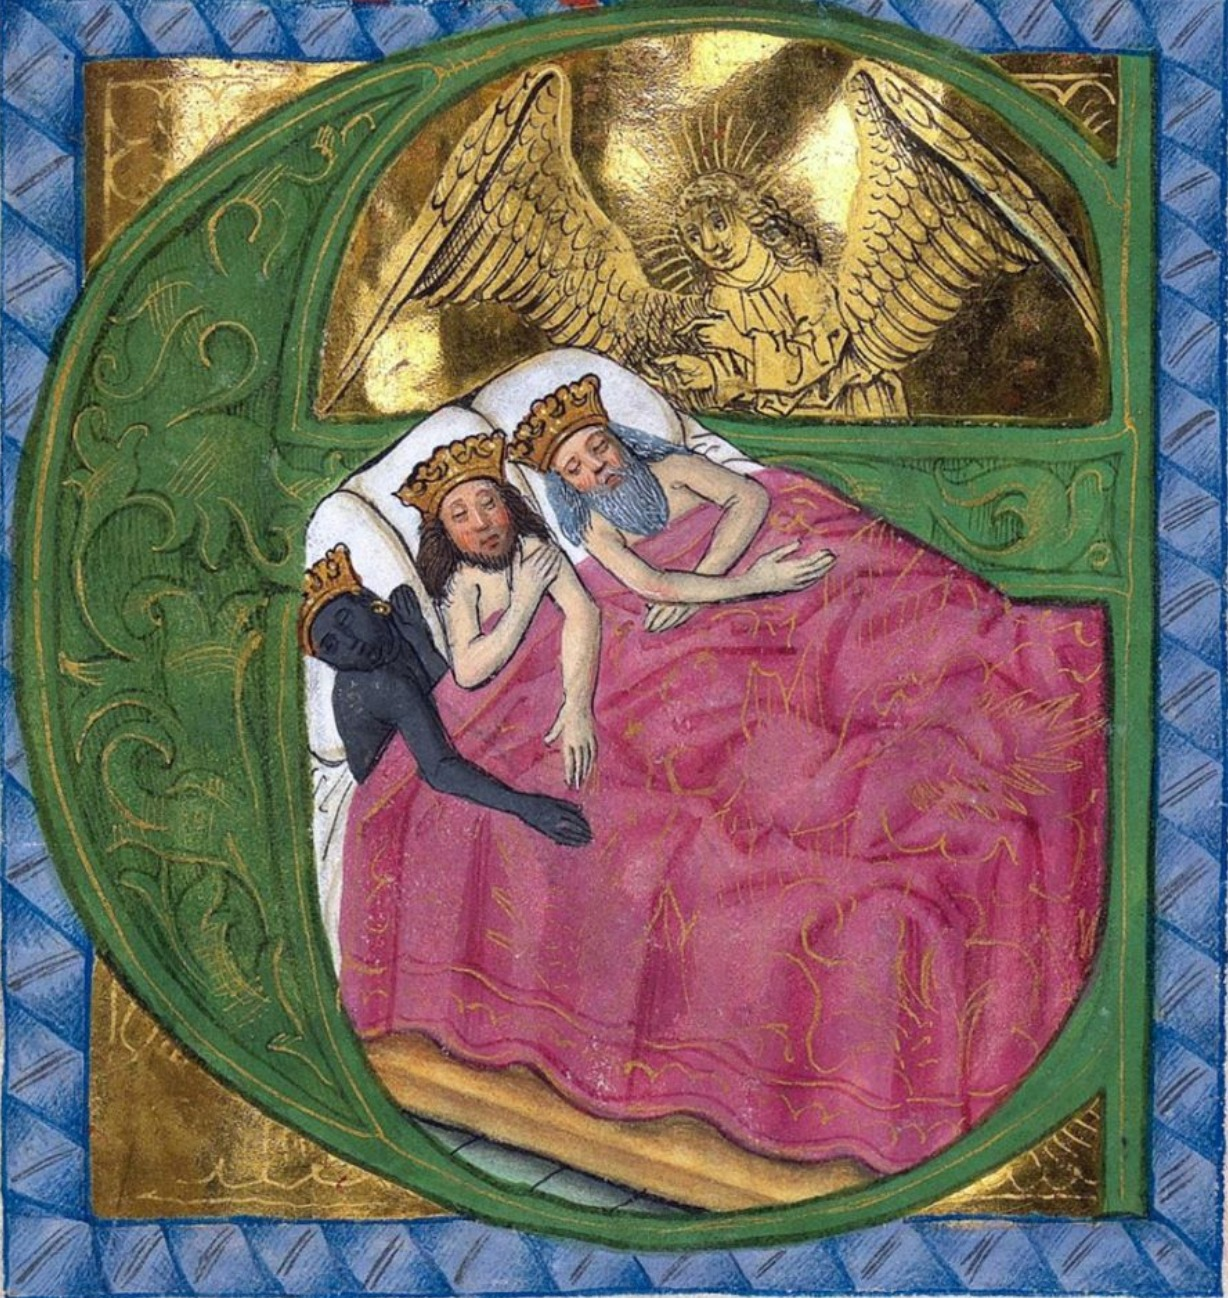 Illuminated manuscript image of the biblical Dream of the Magi showing the three kings naked in bed and an angel speaking to them